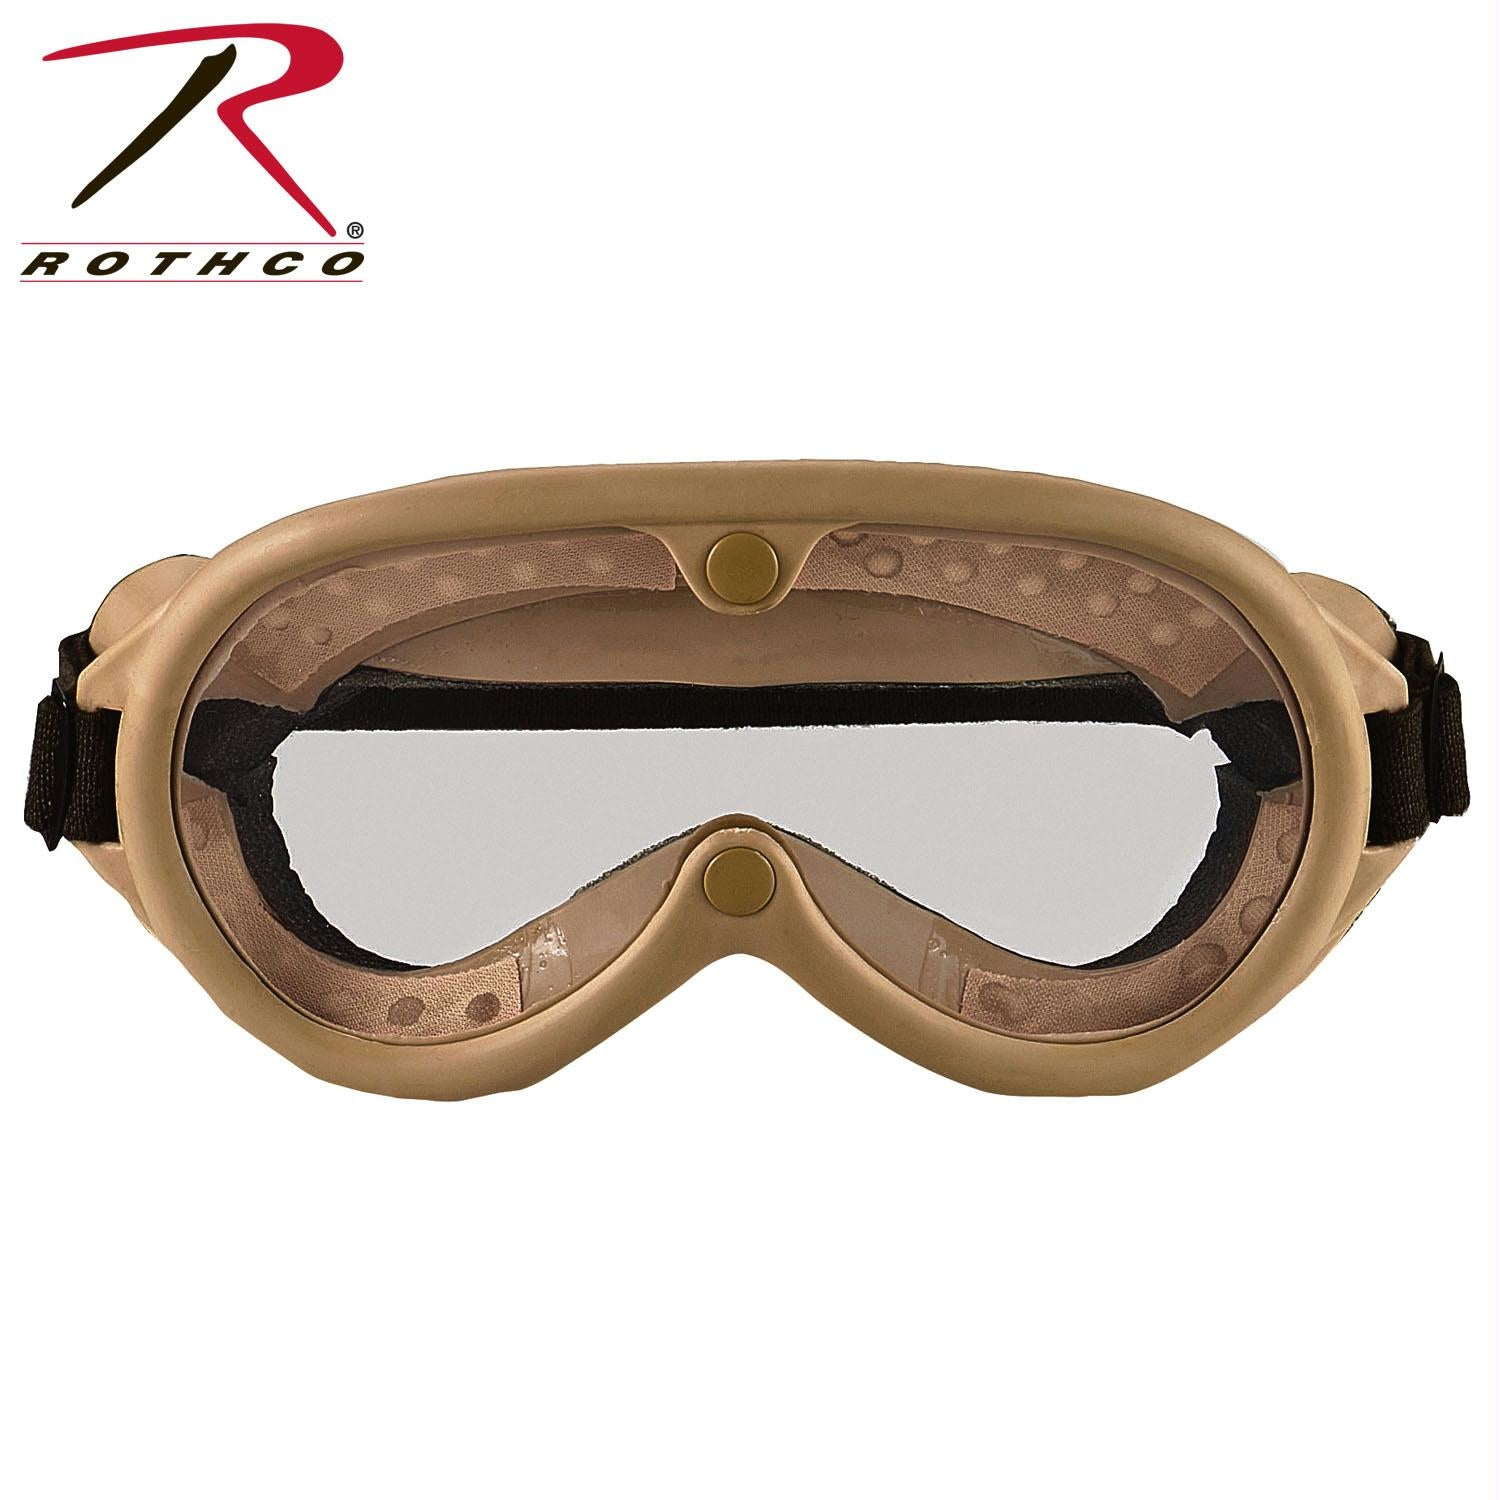 Rothco G.I. Type Sun, Wind & Dust Goggles - Tan